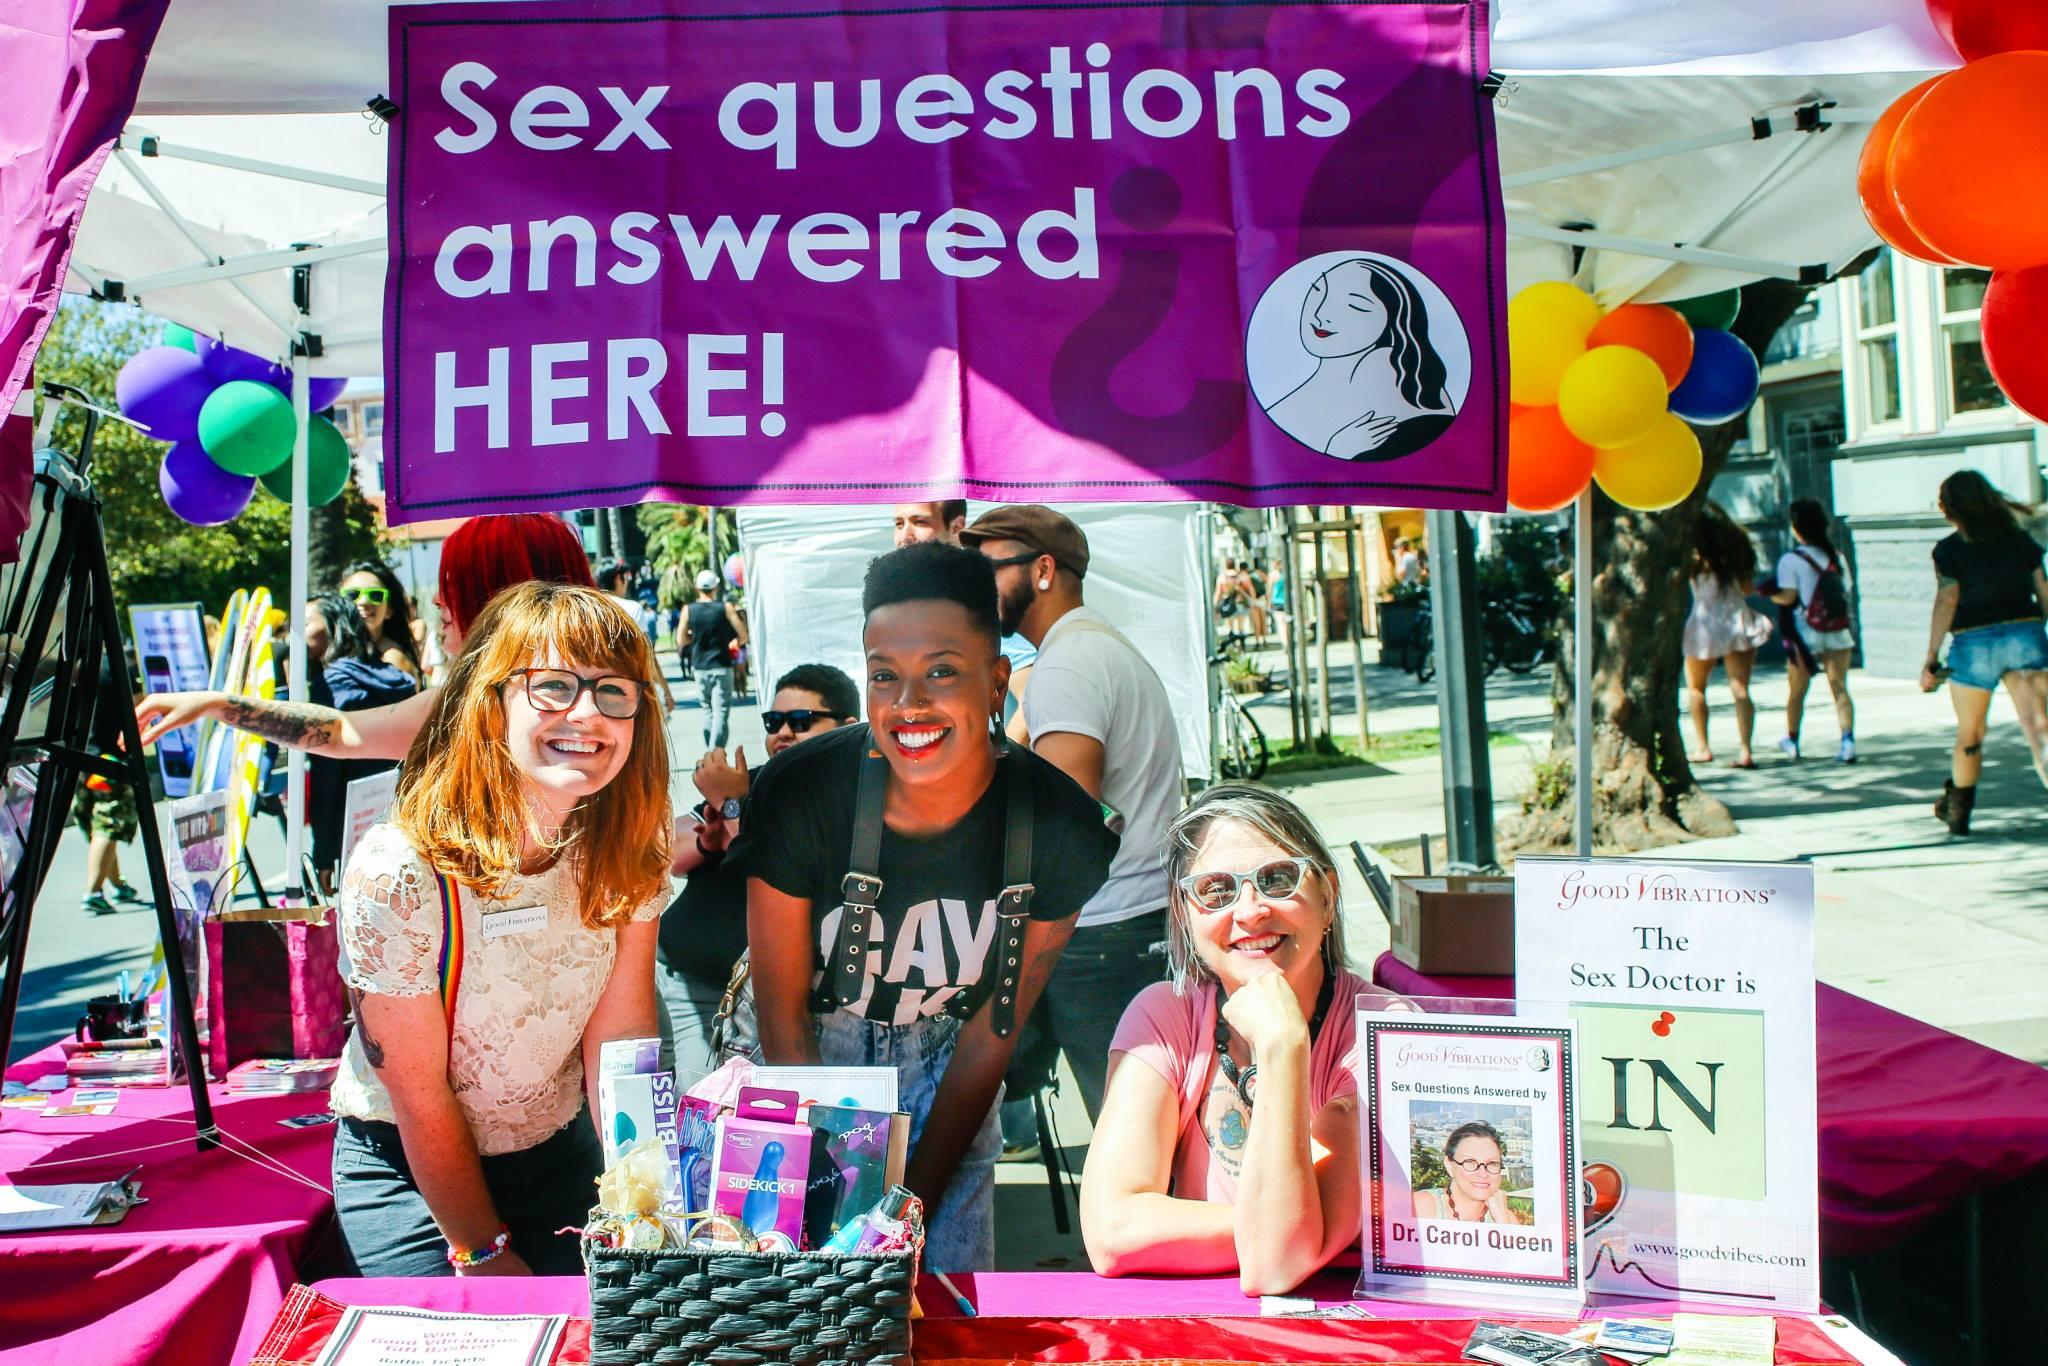 Dr. Queen at the Good Vibrations Dyke March booth